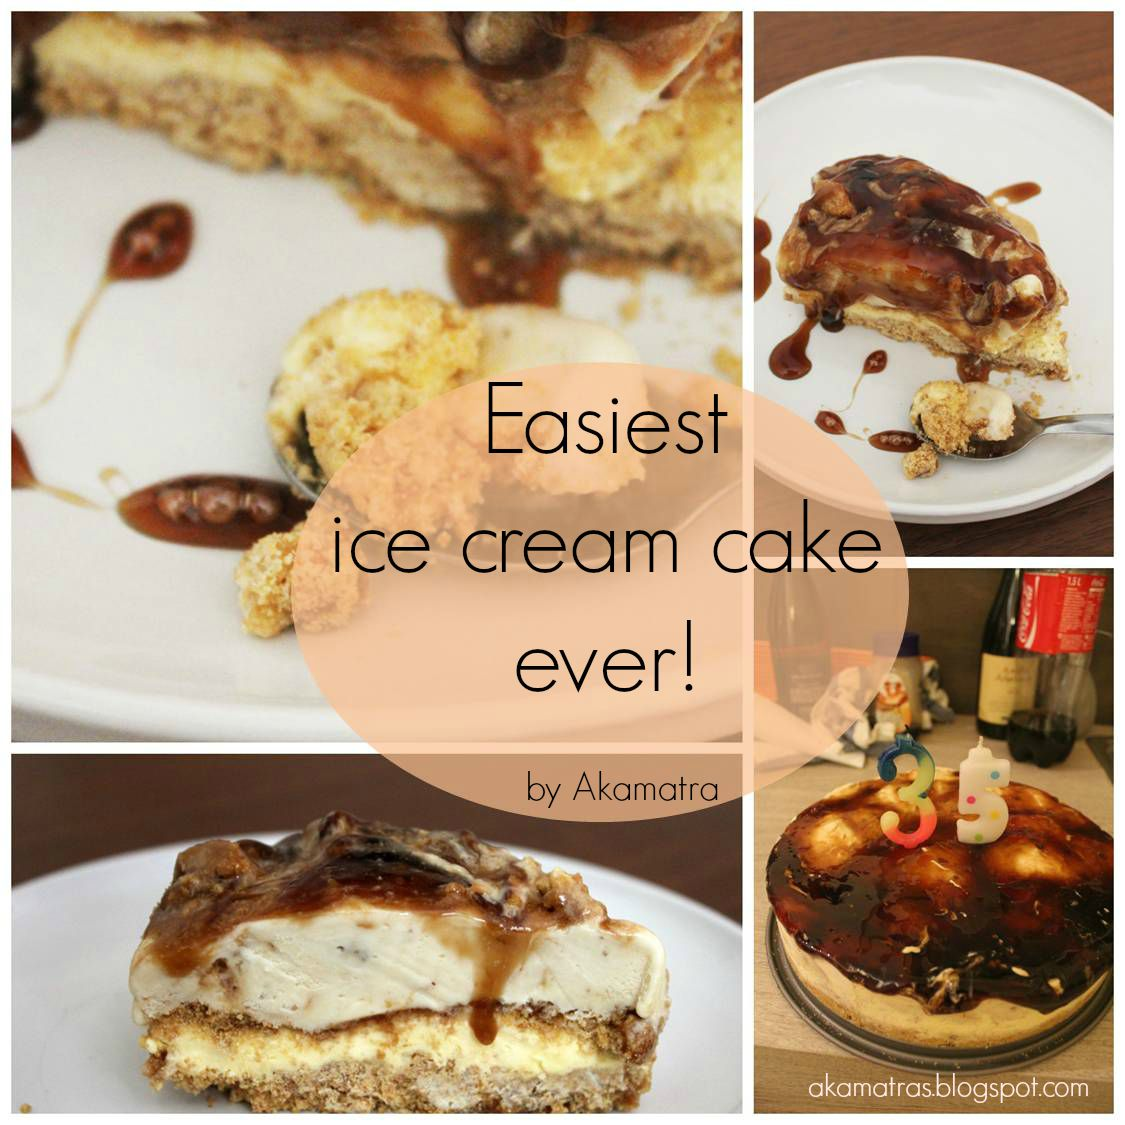 Easiest ice cream cake recipe - No ice cream machine needed